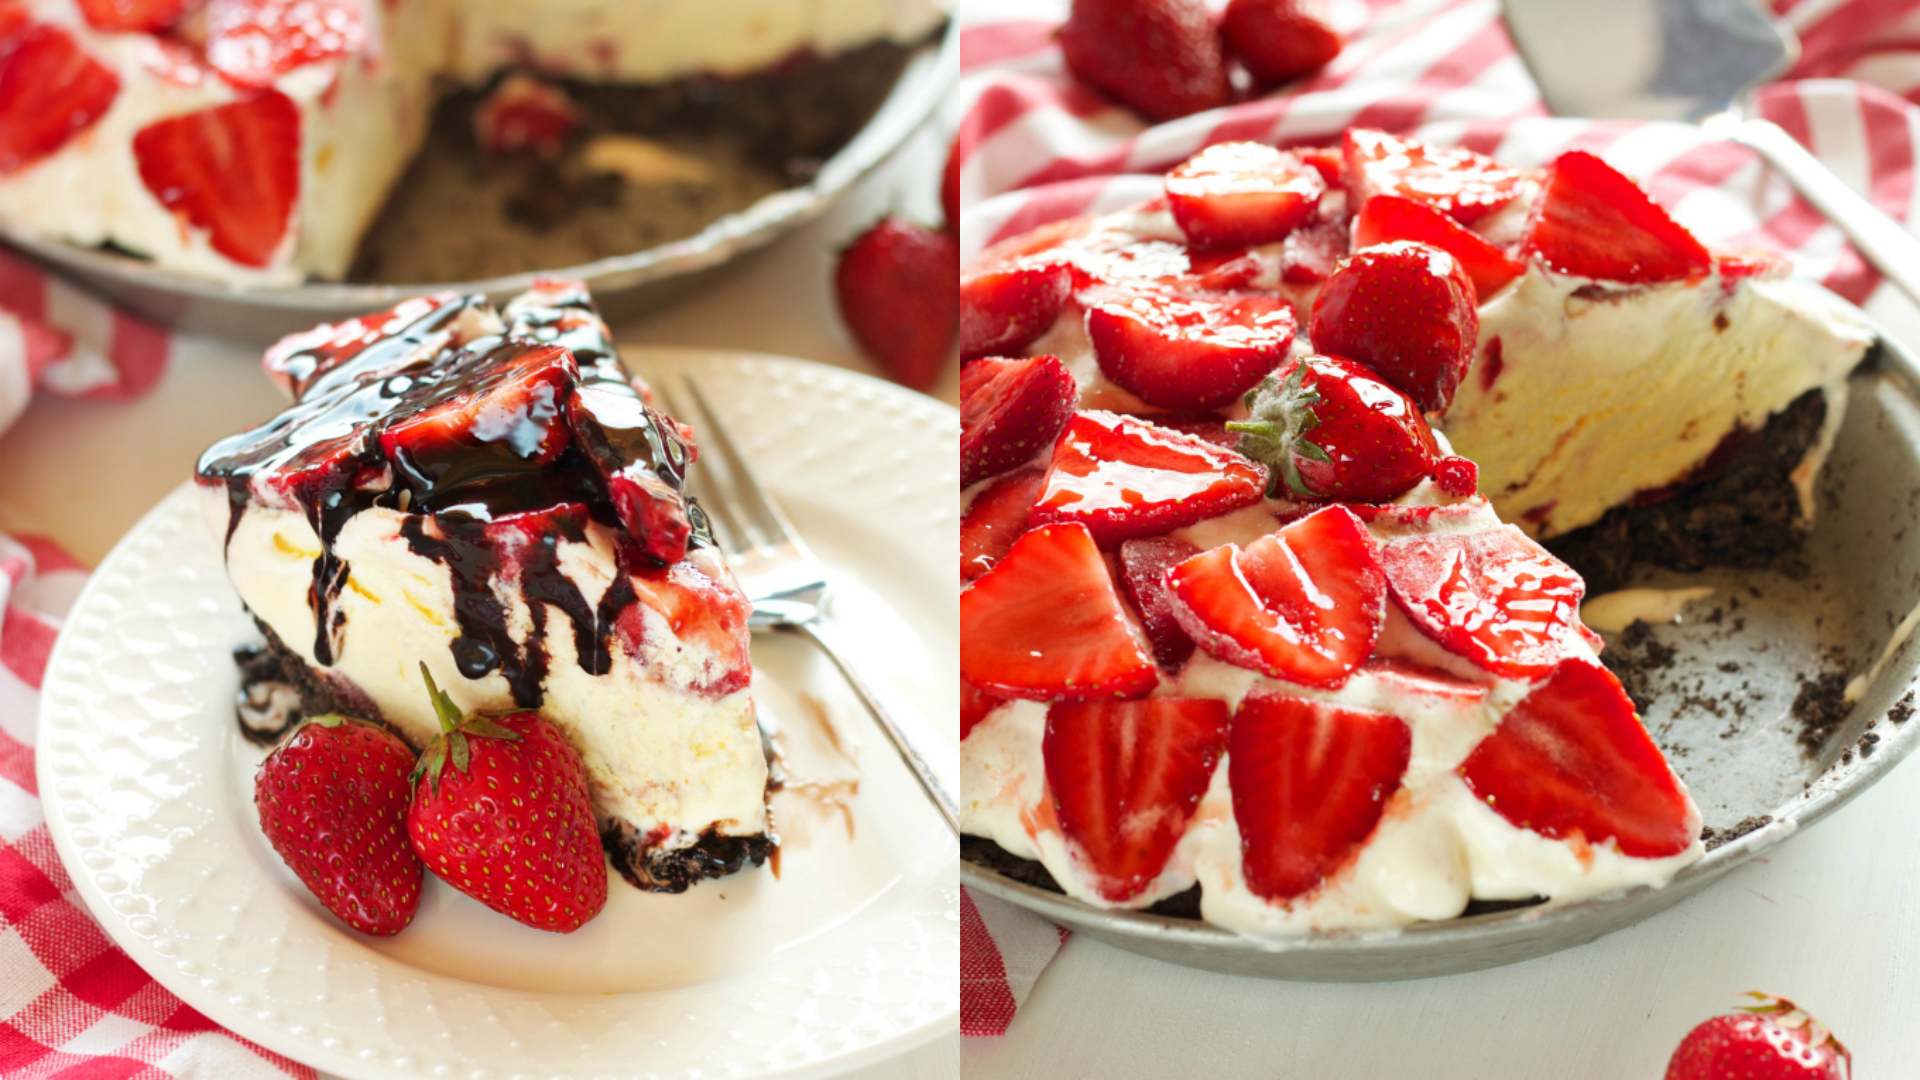 strawberry-cheesecake-ice-cream-pie-YouTube-thumbnail Strawberry Cheesecake Ice Cream Pie